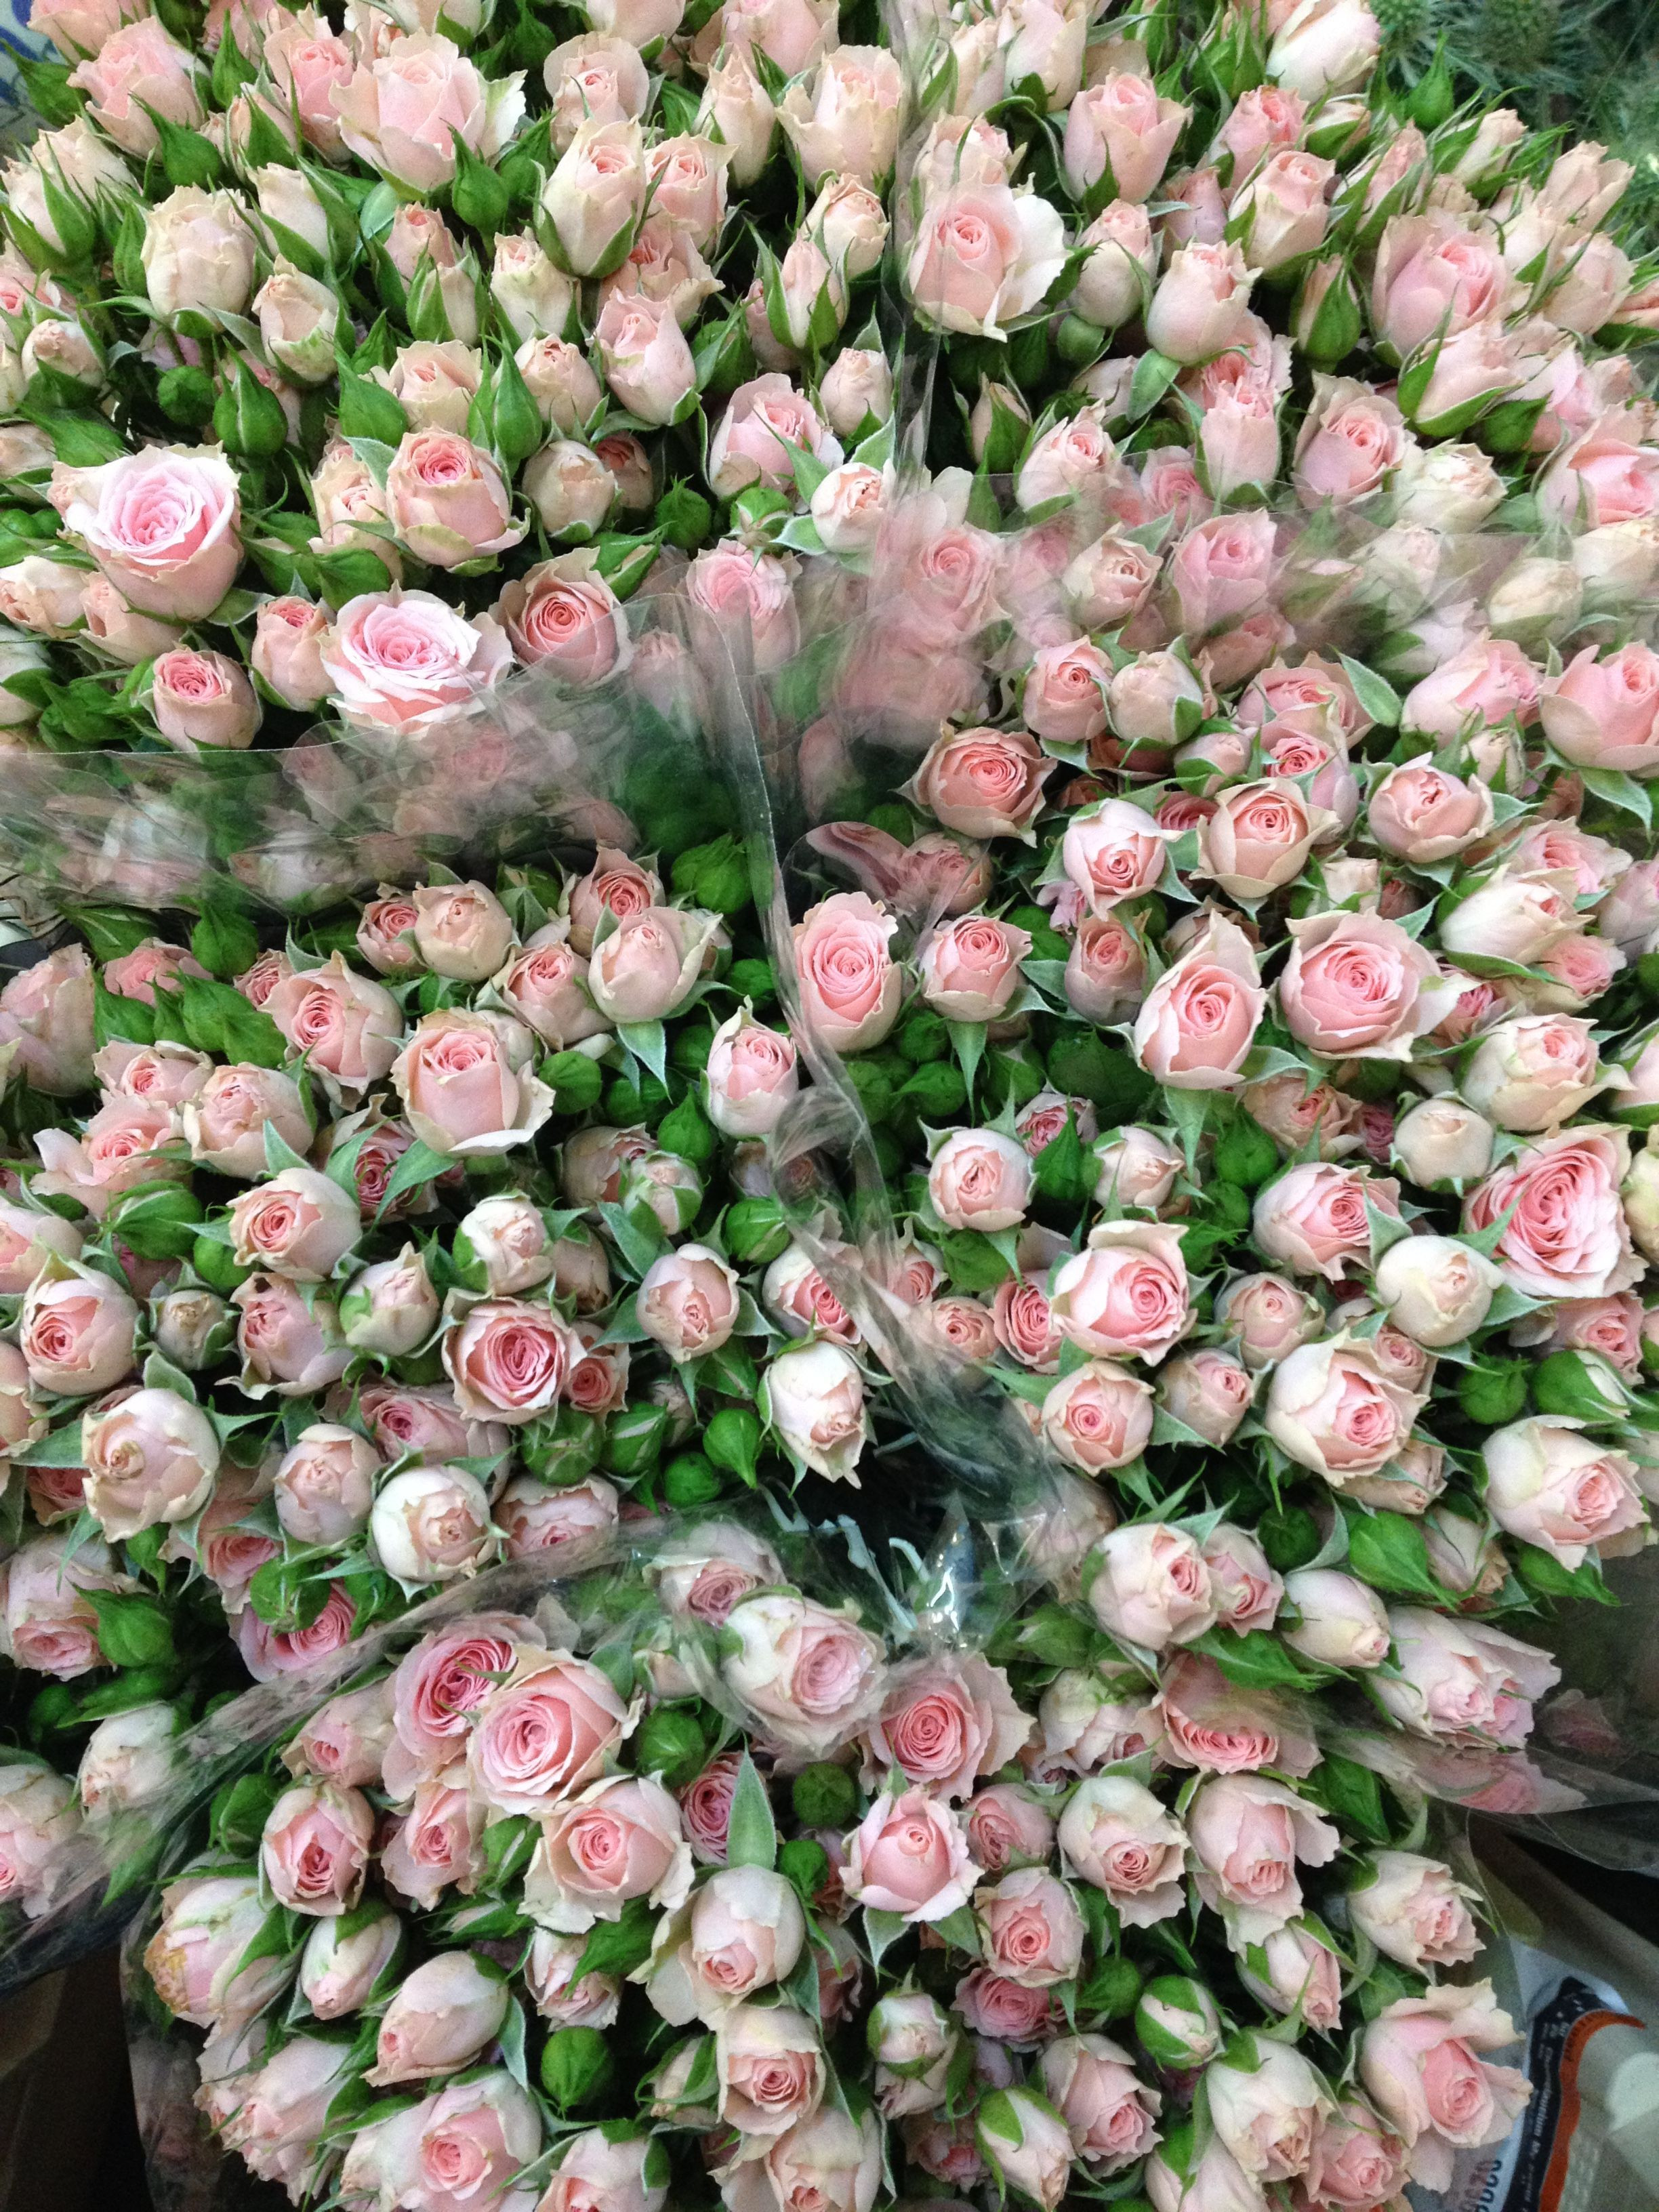 Spray Rose Lydia these are a small head Sold in bunches of 10 stems from the Flowermonger the wholesale floral home delivery service